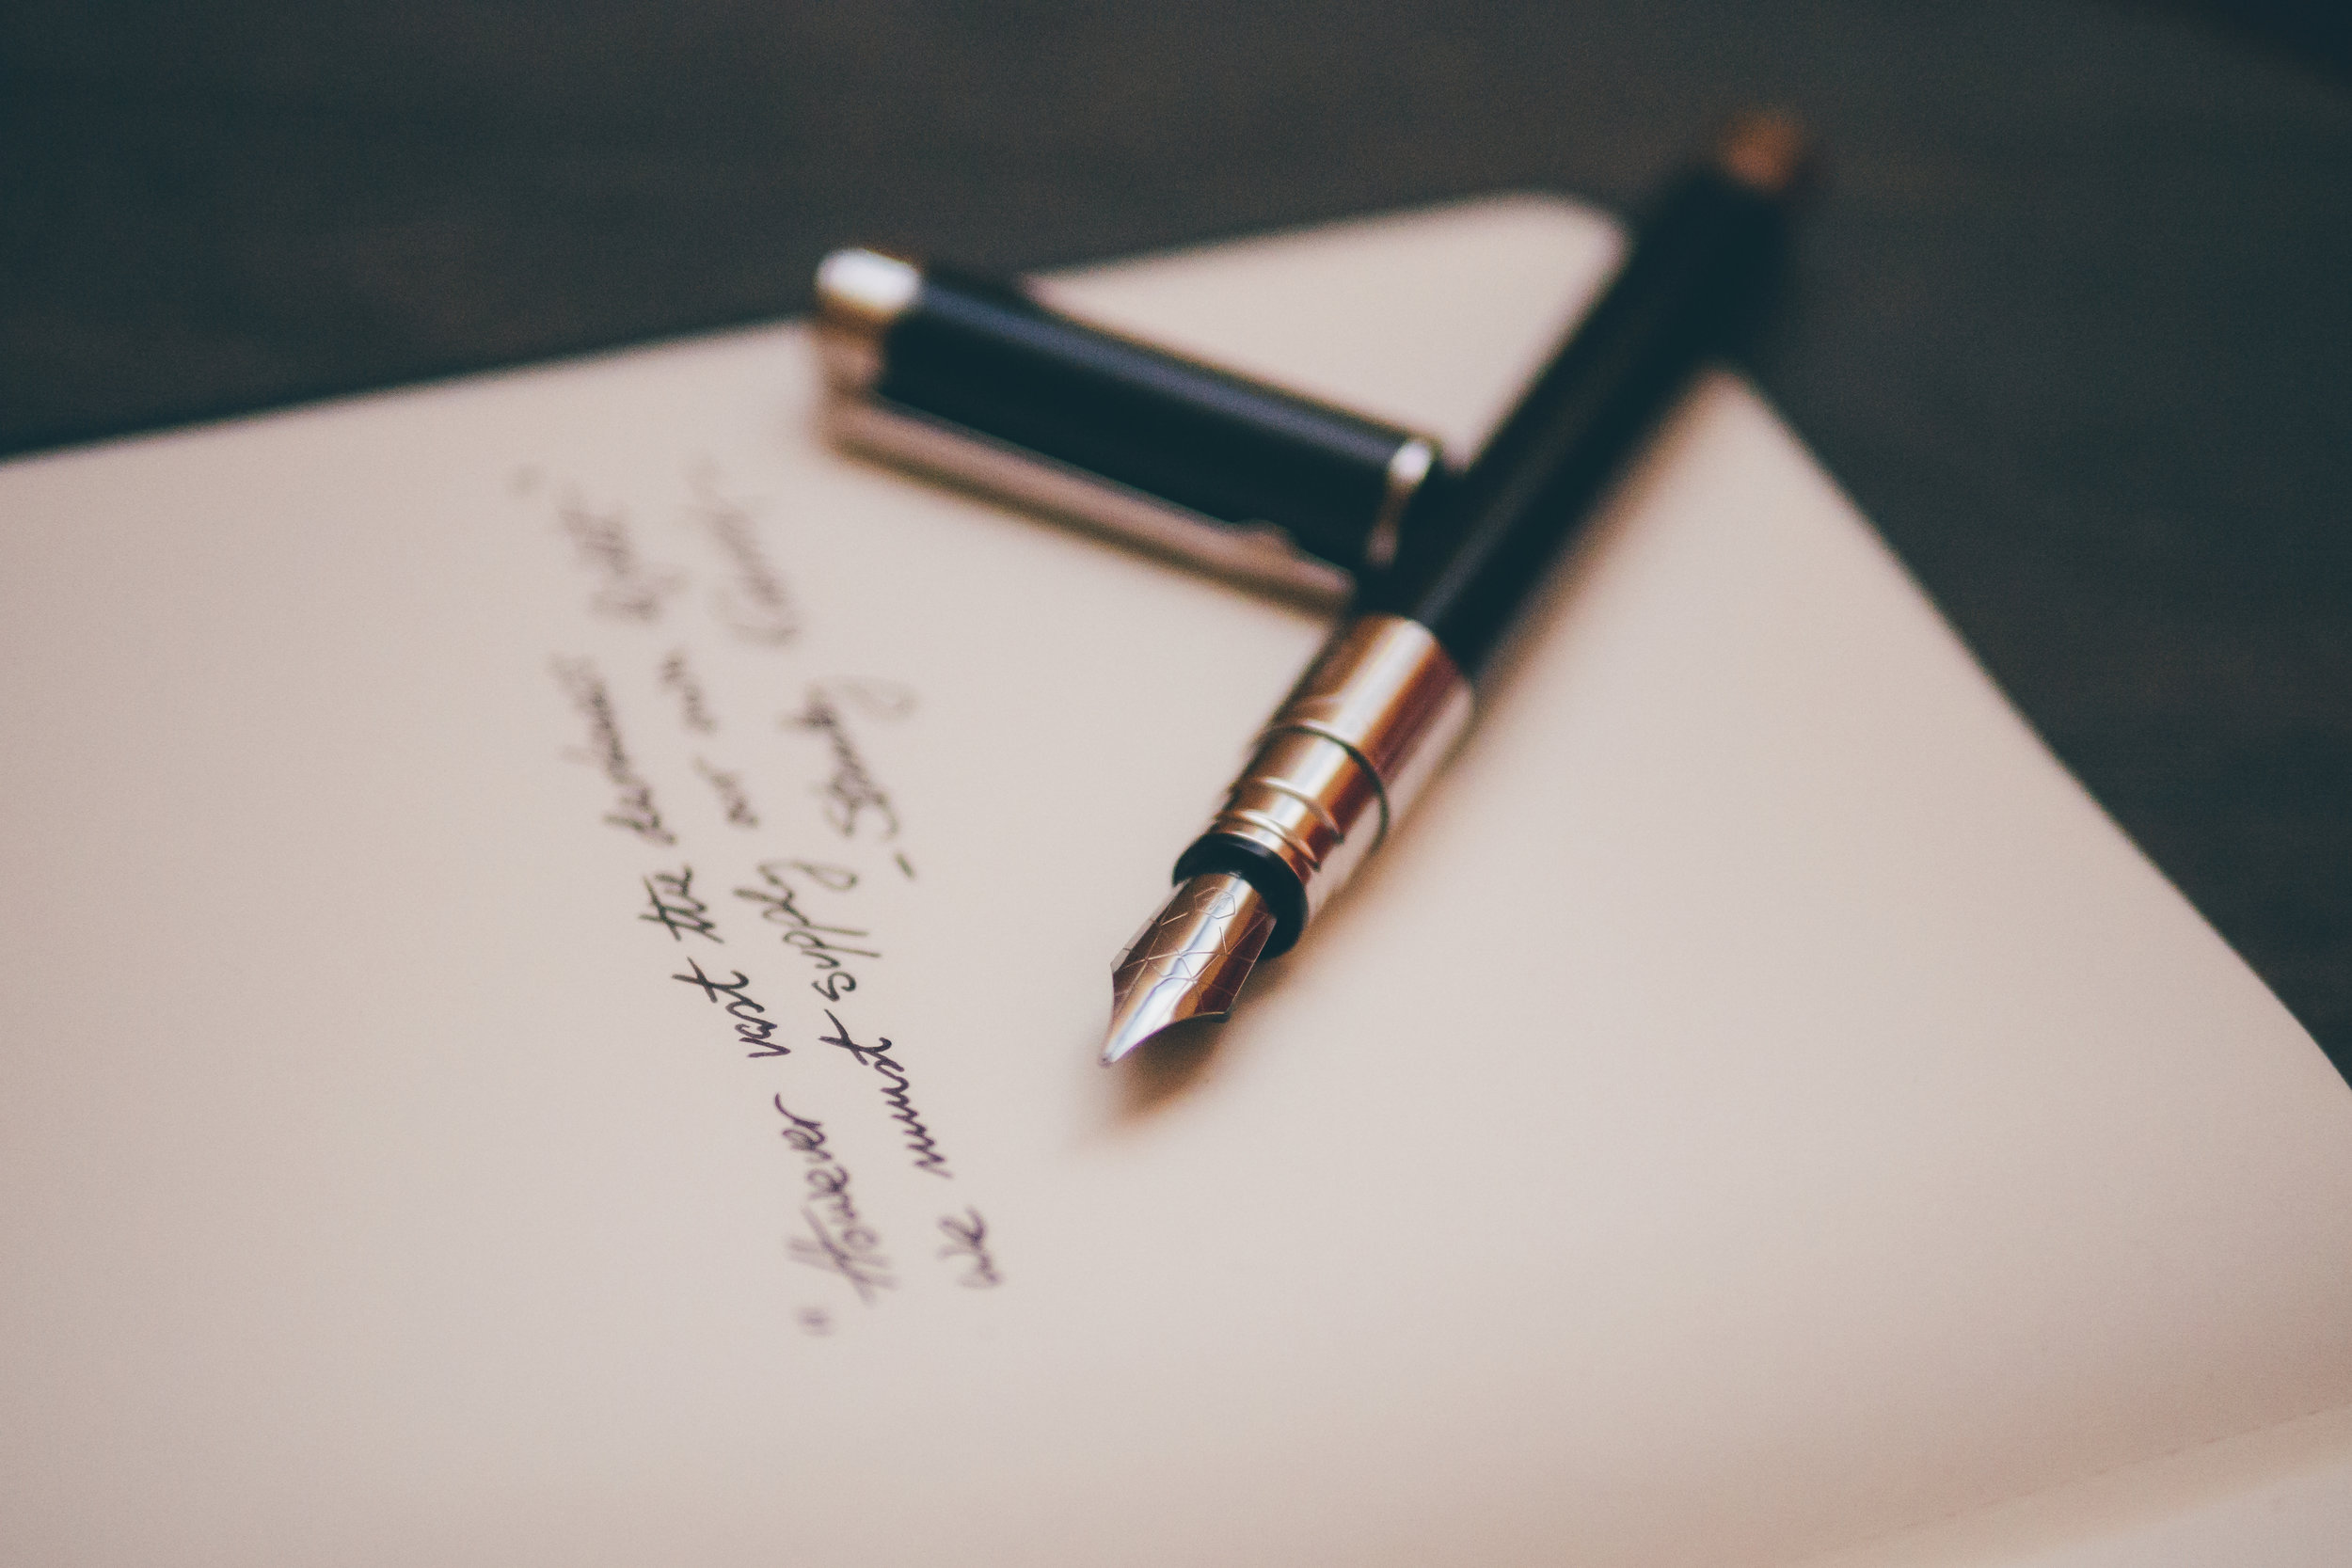 Power of Attorney - A Power of Attorney is often used as another incapacity planning tool. However, it has many more immediate and practical uses.